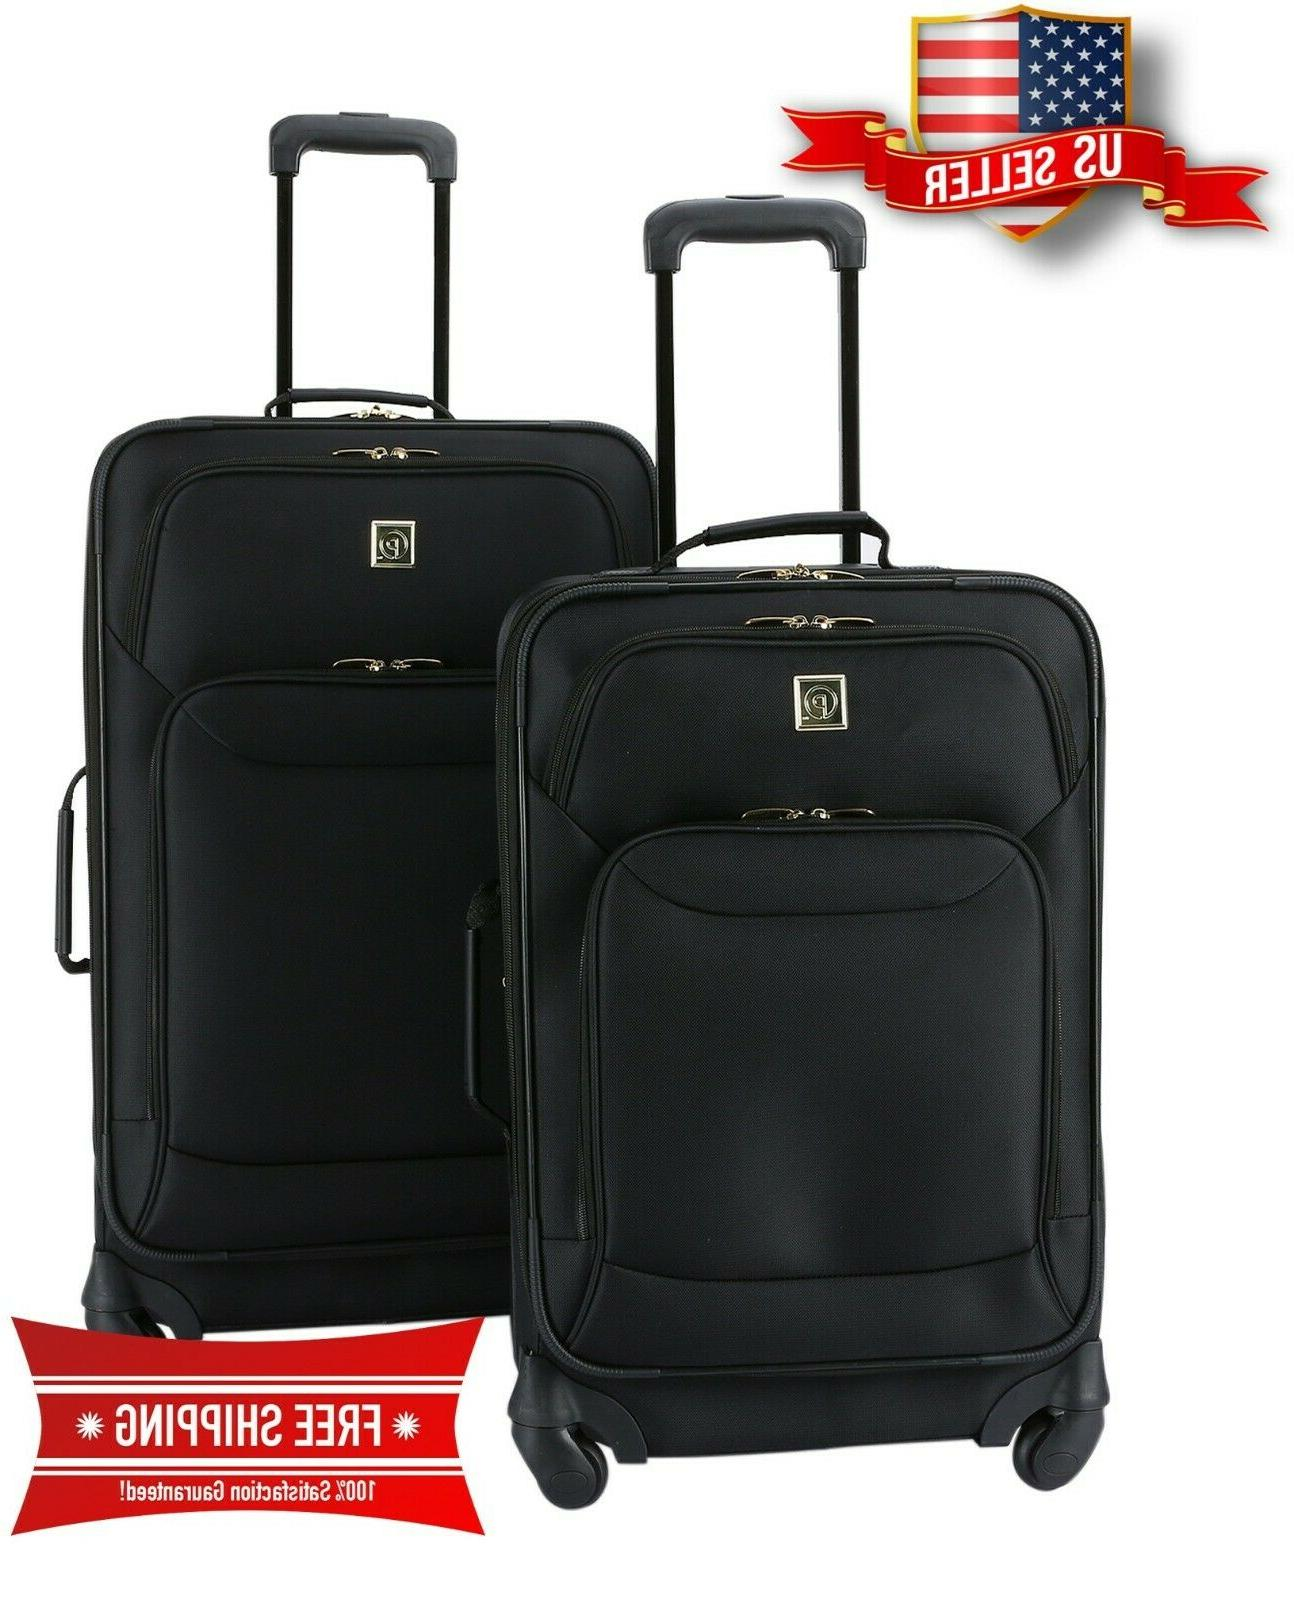 luggage set protege 2 piece expandable spinner